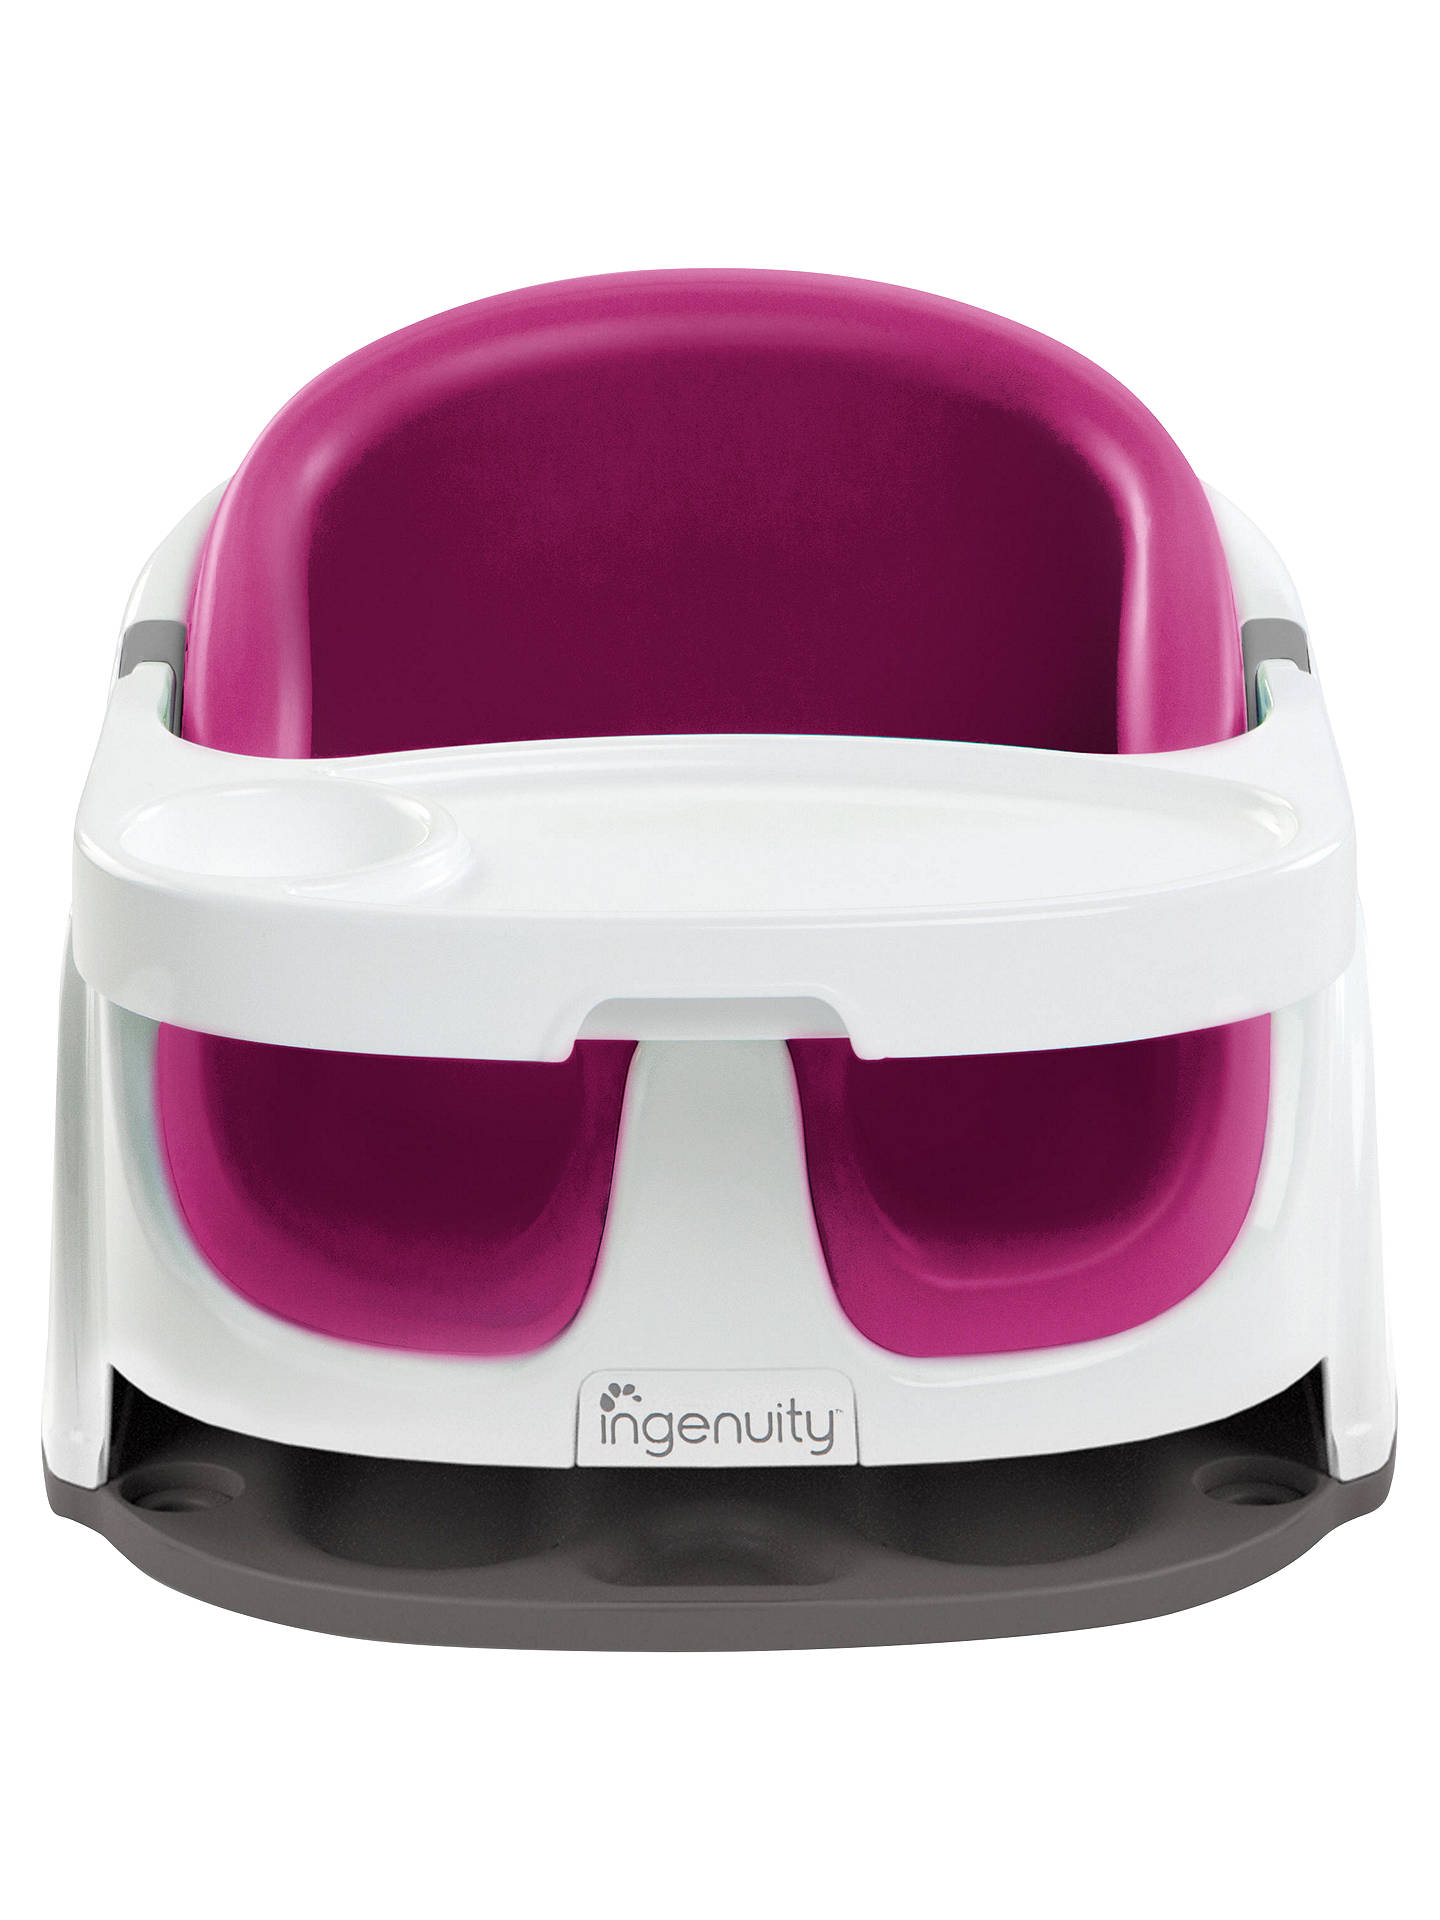 BuyIngenuity Baby Base 2 In 1 Booster Seat Pink Online At Johnlewis